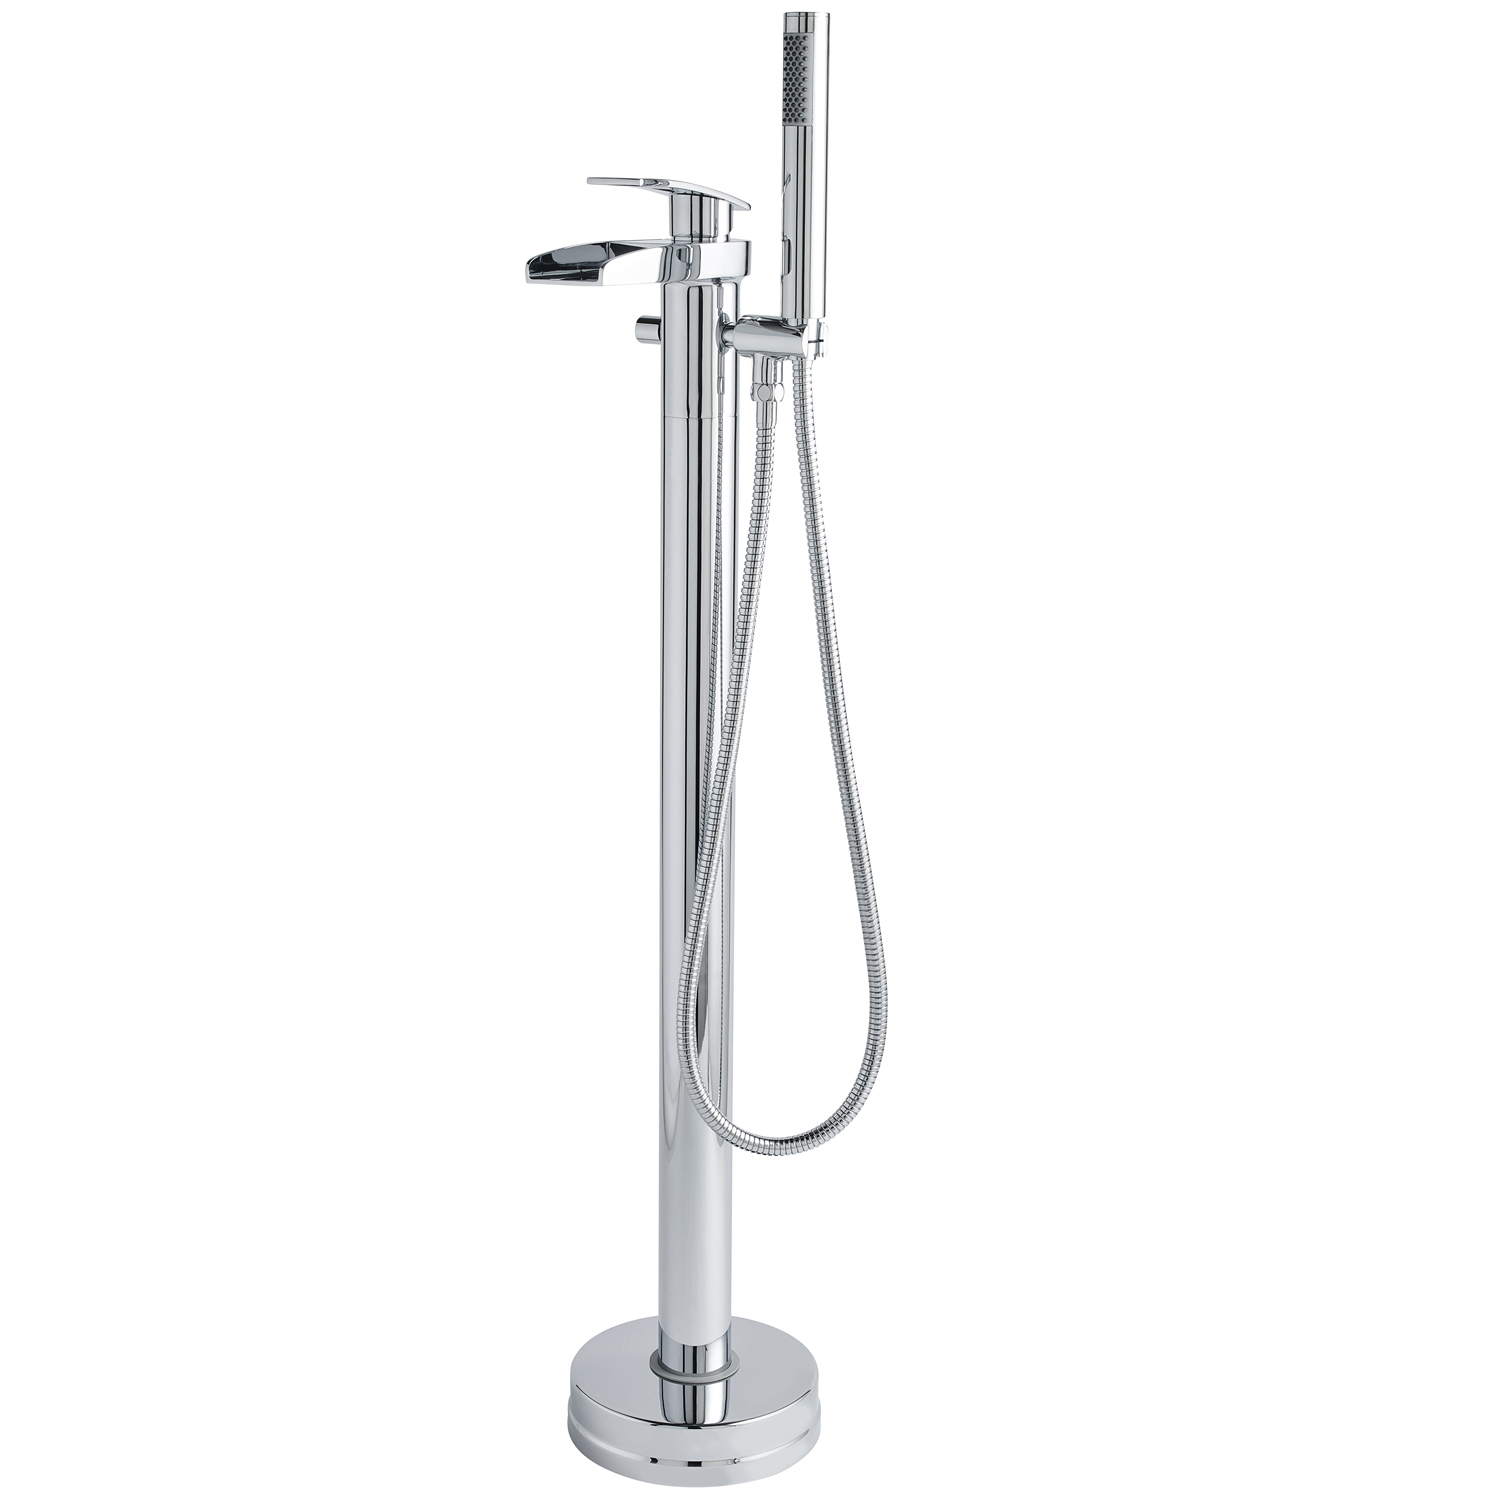 Hudson Reed Rhyme Mono Basin Mixer Tap and Bath Shower Mixer Tap, Floor Standing, Chrome